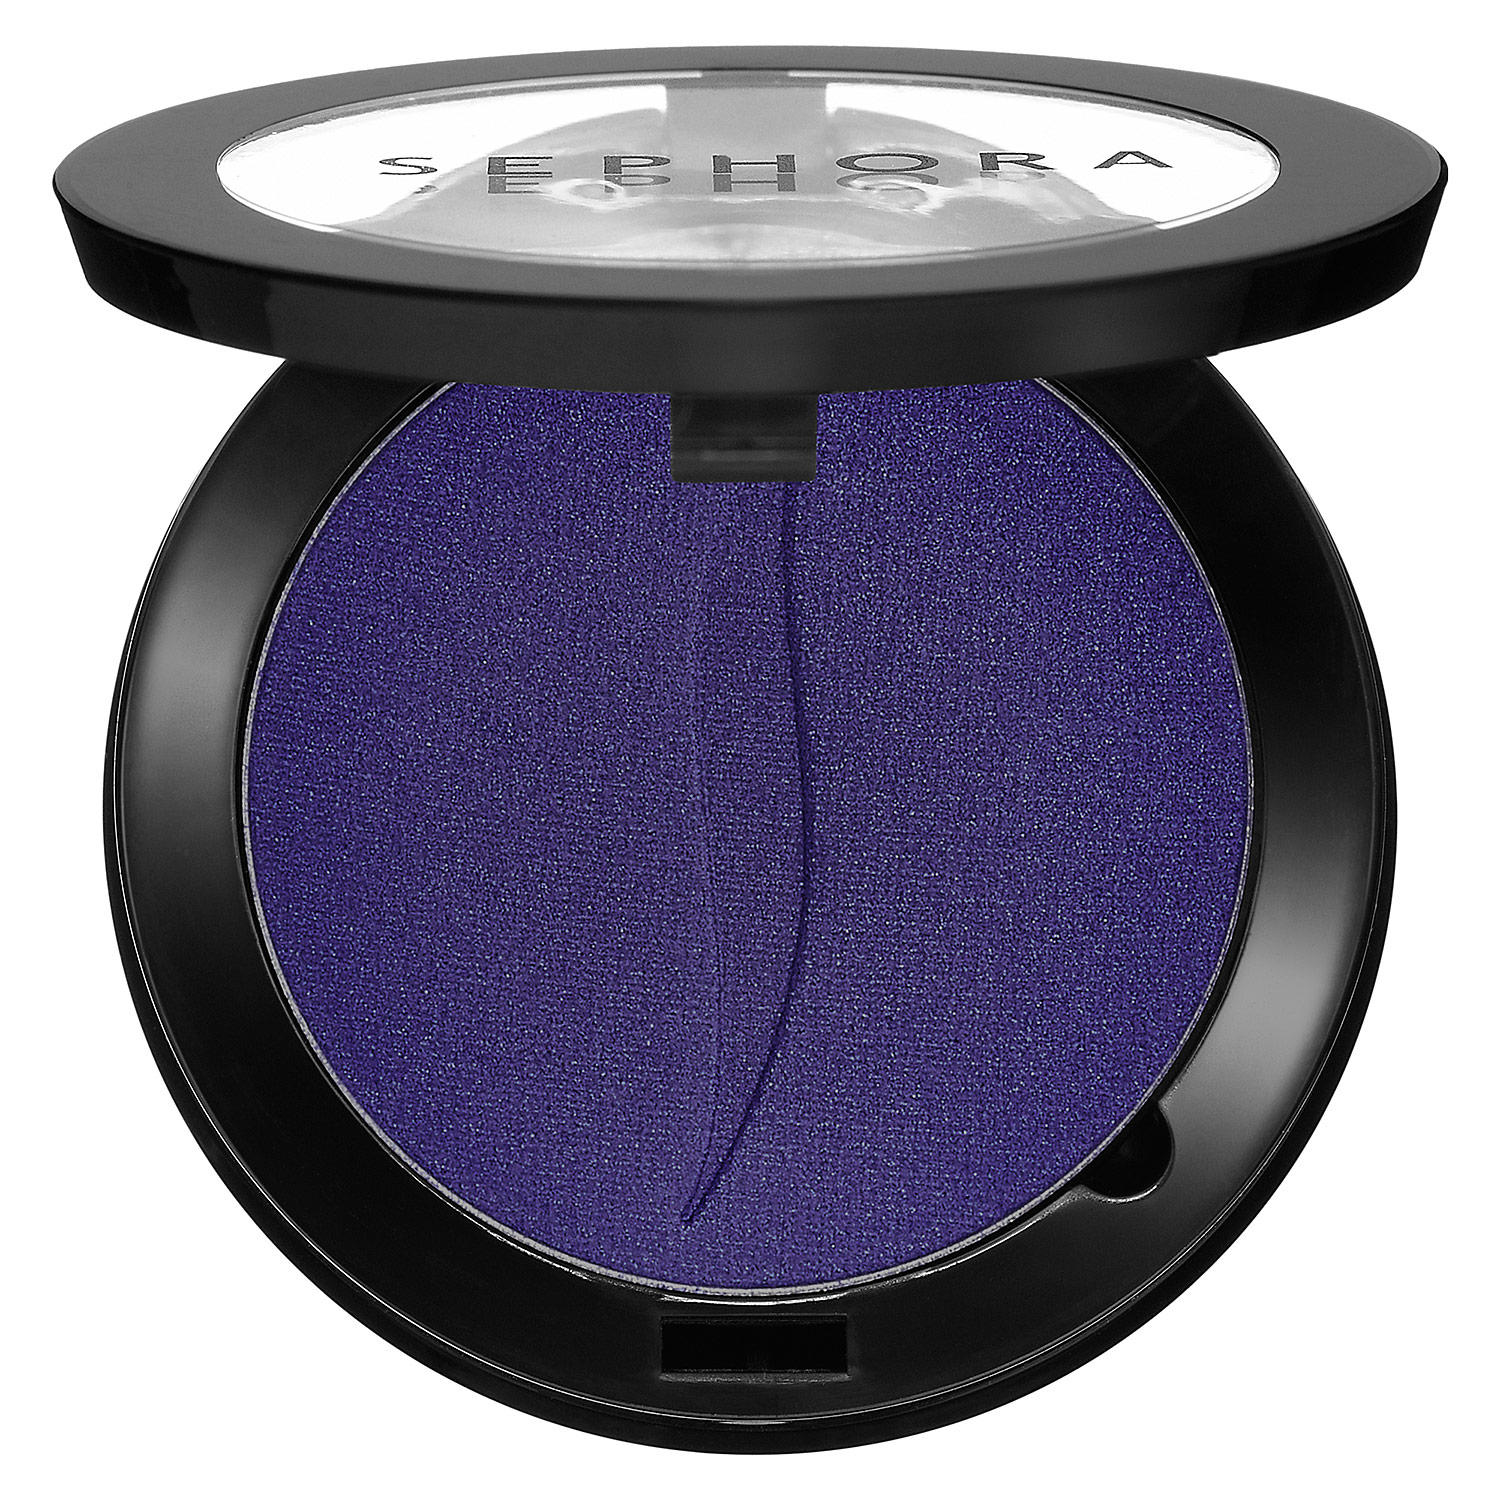 Sephora Colorful Eyeshadow Full Moon Romance No. 24